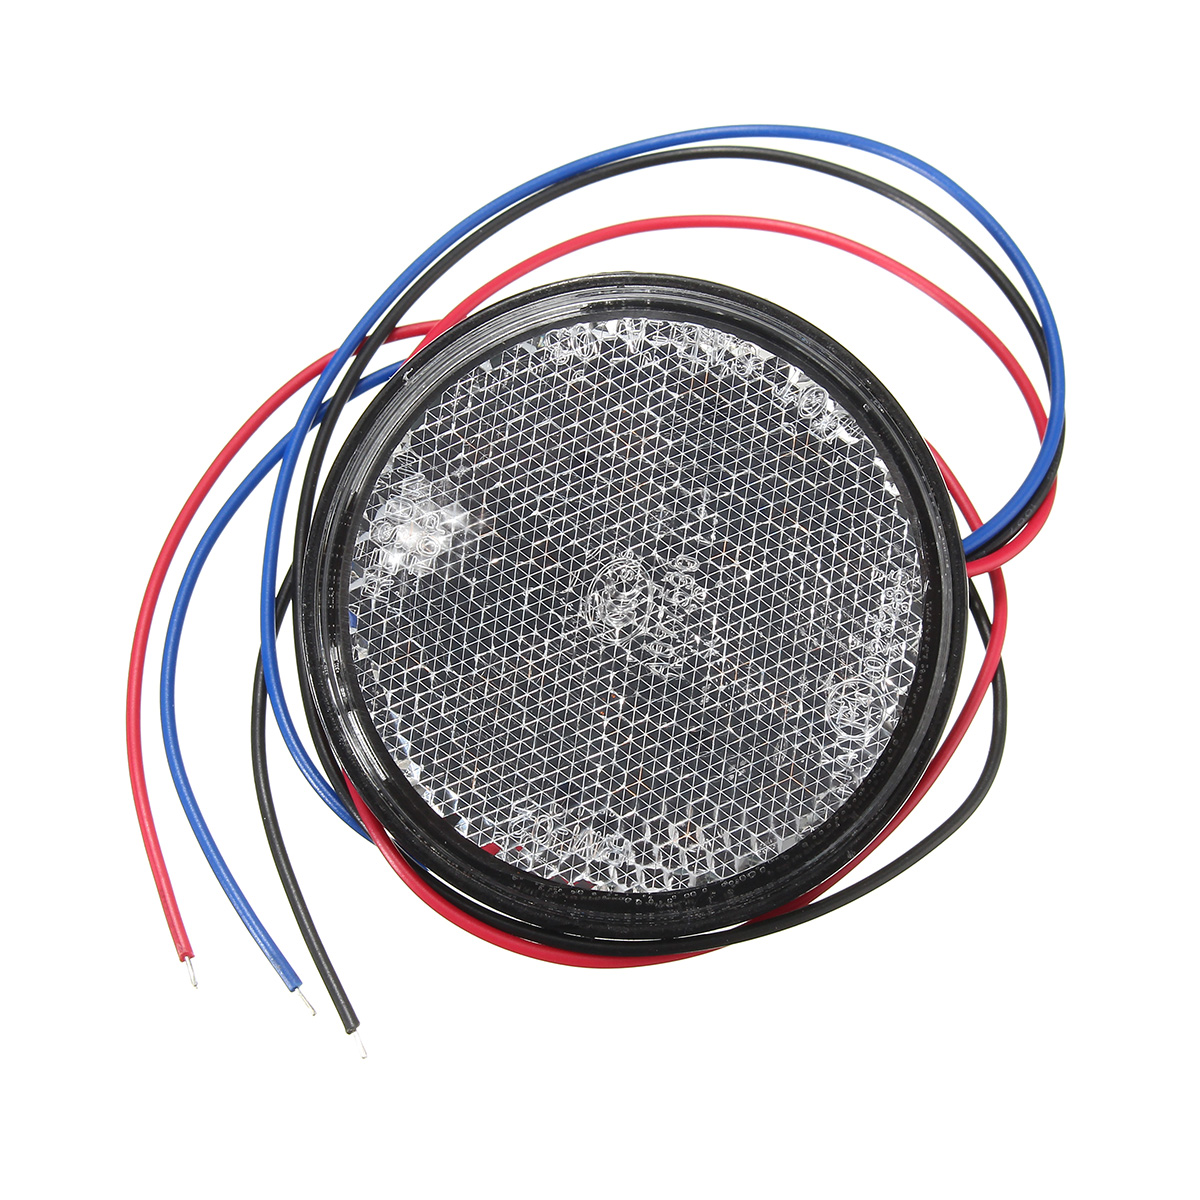 6W 24LED Round Reflector LED Rear Taillight Brake Stop Light For Motorcycle 7 Colors